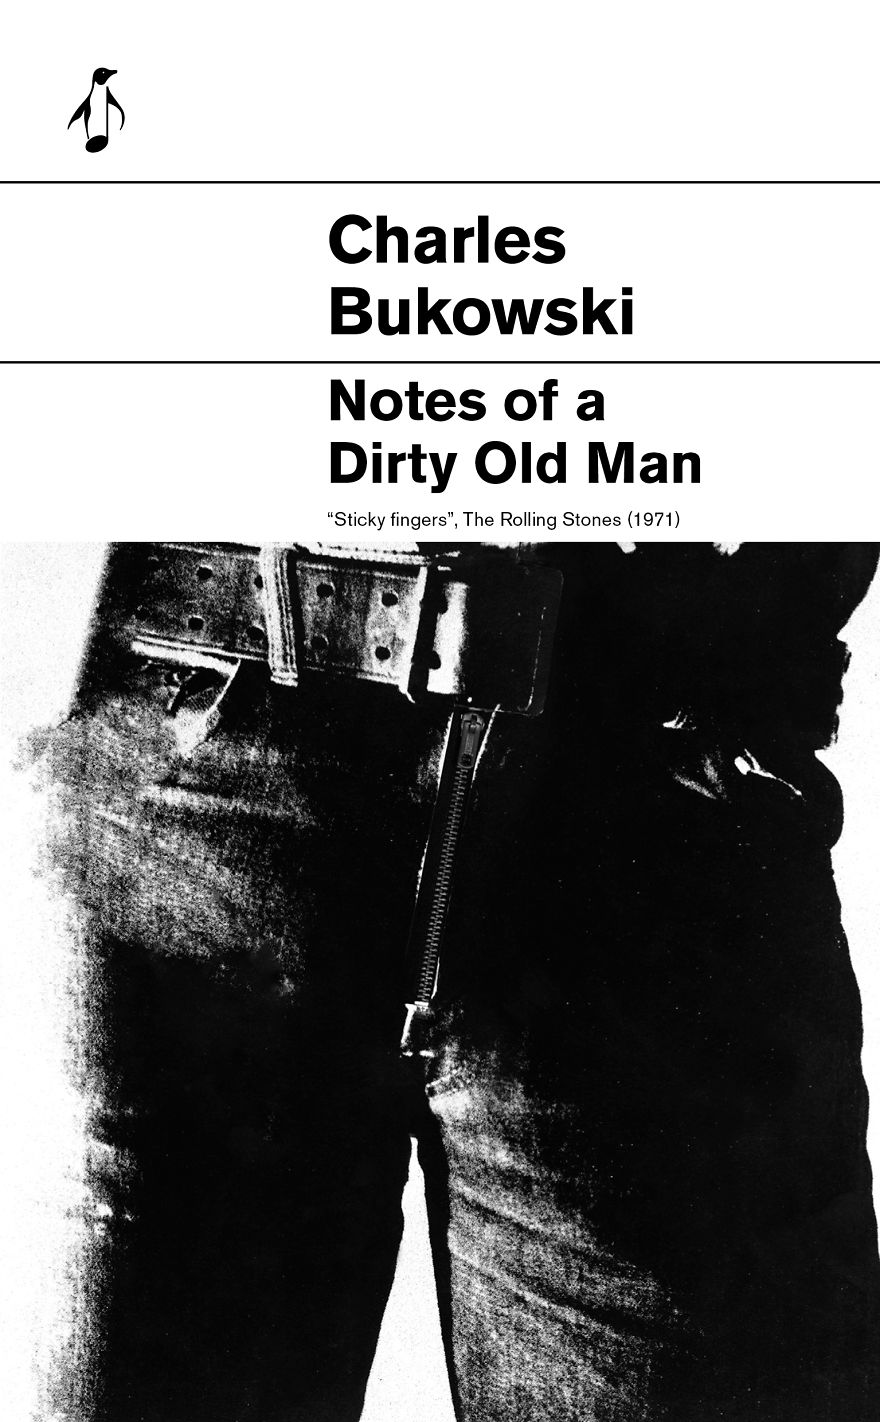 Notes Of A Dirty Old Sticky Man